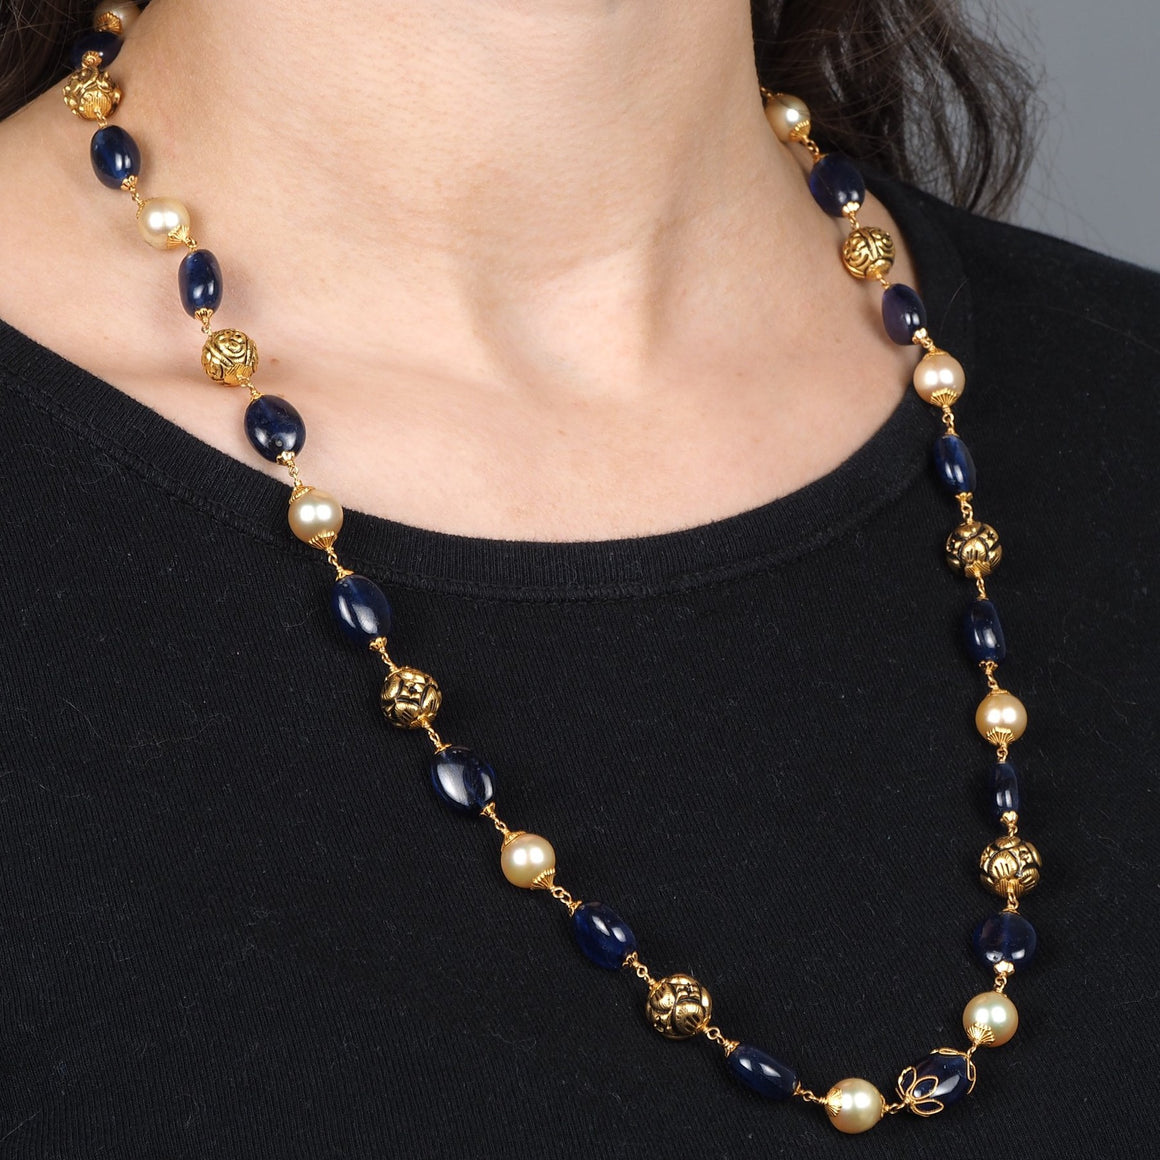 22ct Gold Antiquated Look Necklace with Cultured Pearls and treated Blue Sapphires (GMS-D848)